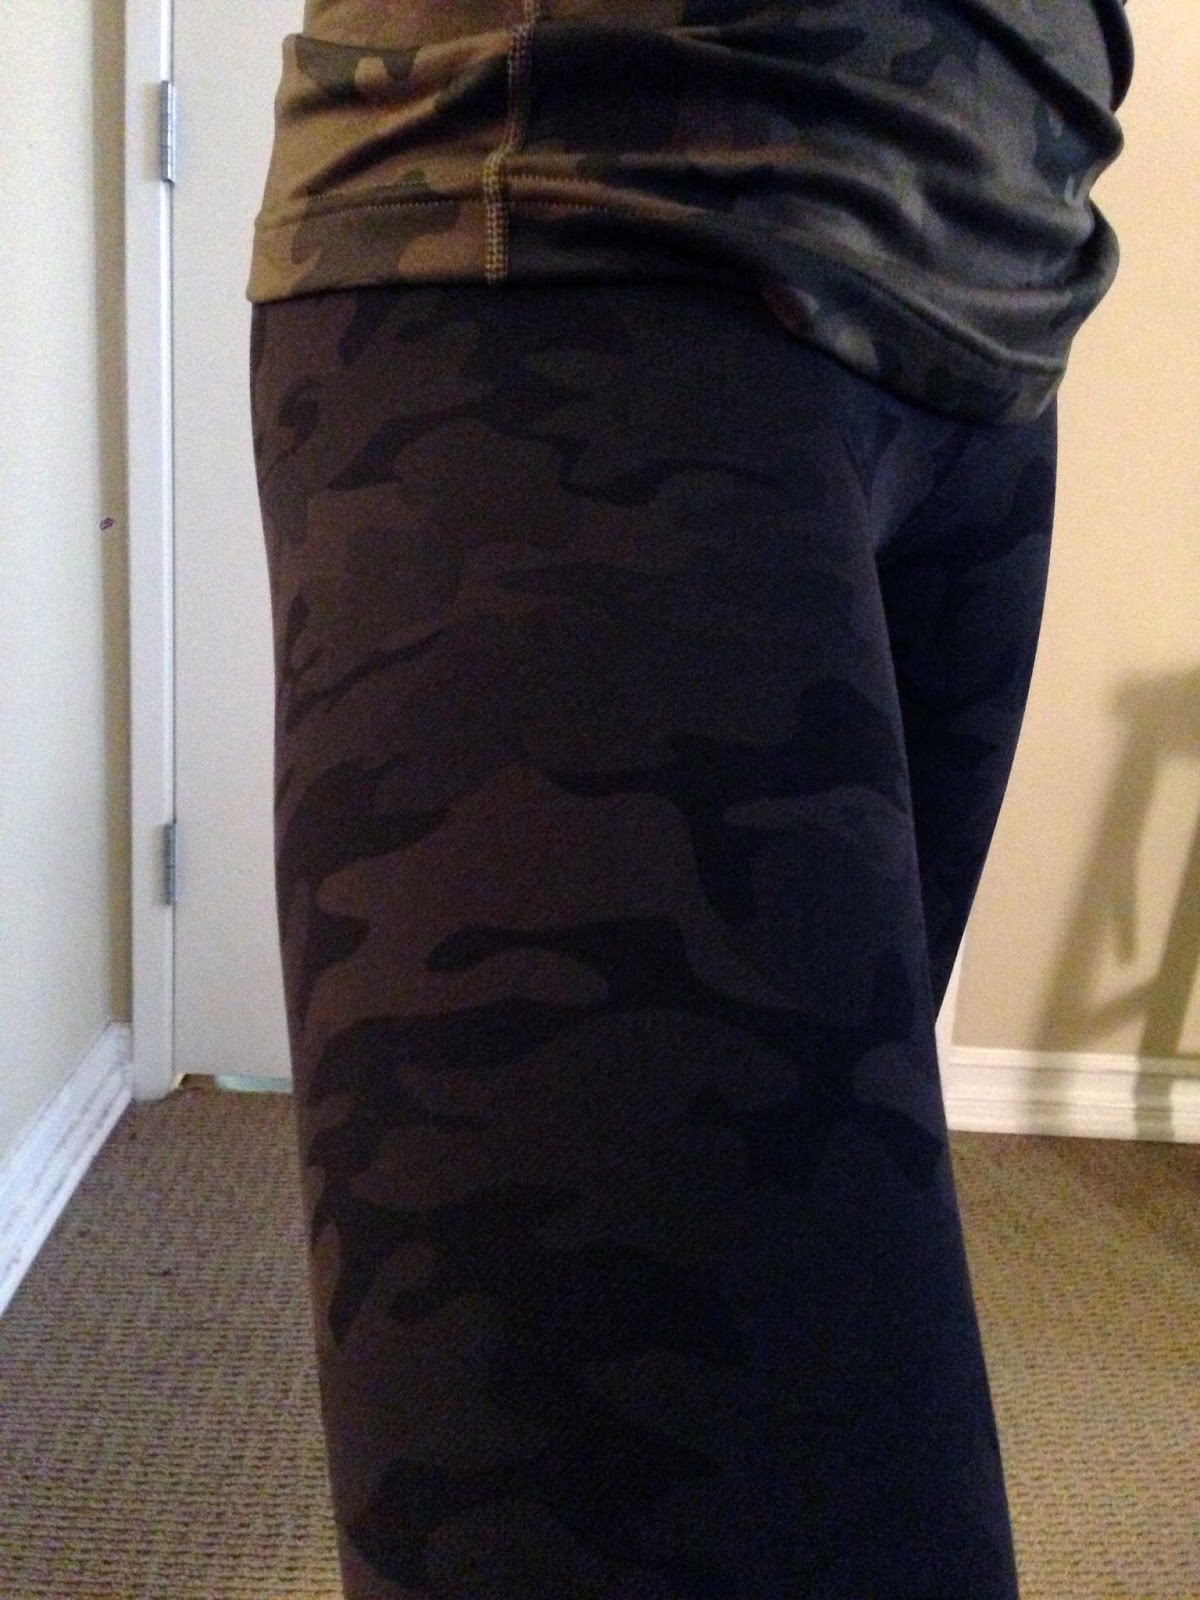 05fc67ce23bed9 It's subtle but definitely noticeable. Very cool looking! I can't wait to  wear them. The fatigue camo cool racerback has high polyester ... Lululemon  Green ...